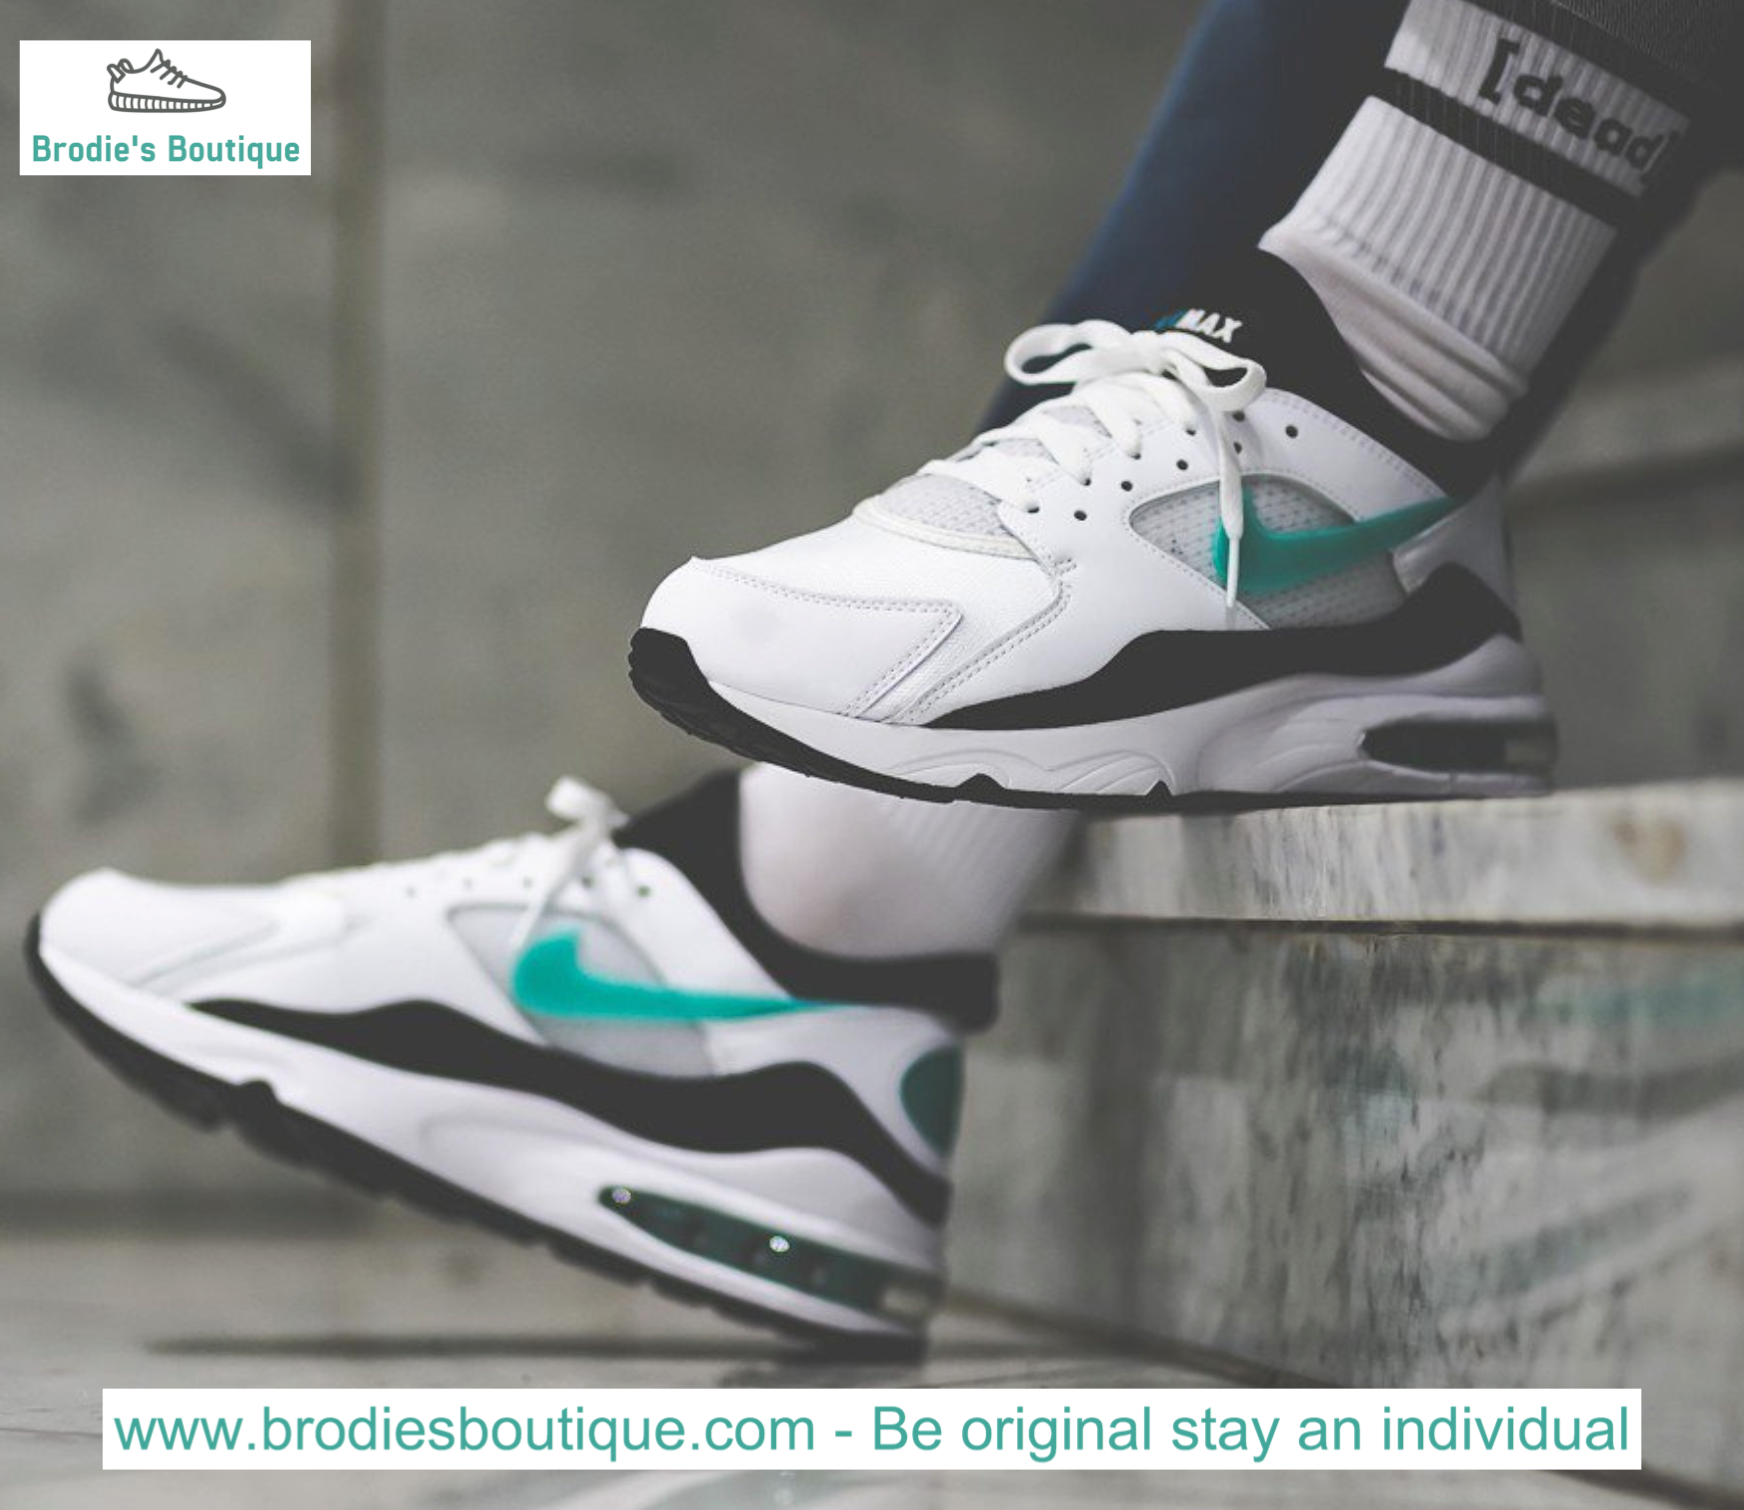 6eb9cca2bd ... clearance nike air max 93 og dusty cactus white sport turquoise black  uk 7 11 eur